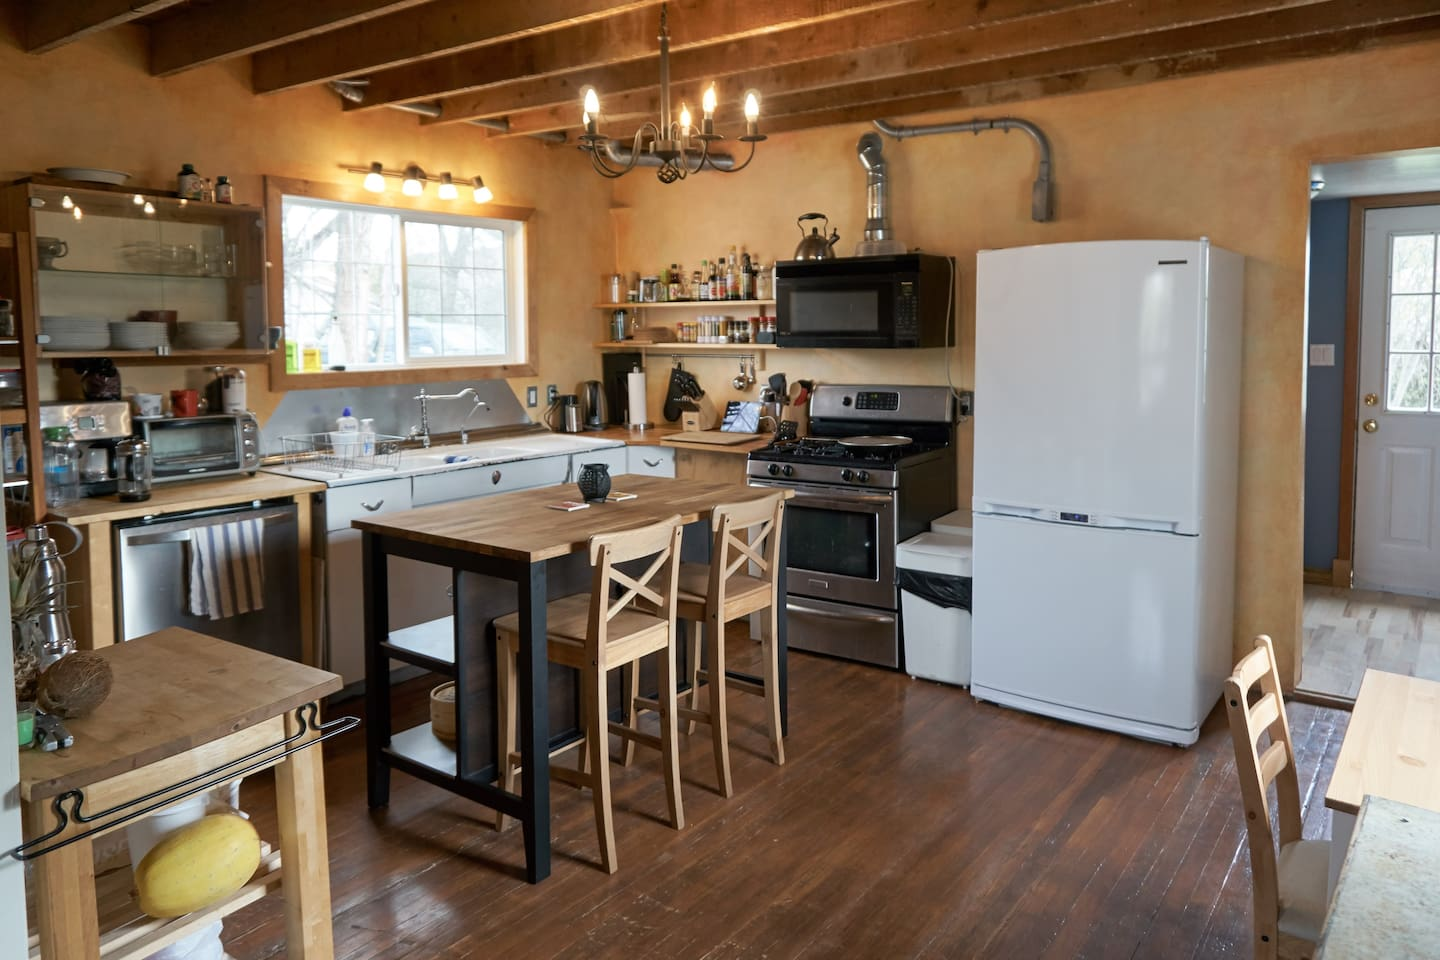 Cozy country kitchen with dishwasher, stove, toaster oven, kettle and wide selection of coffees and teas. Fridge space is available for guests.